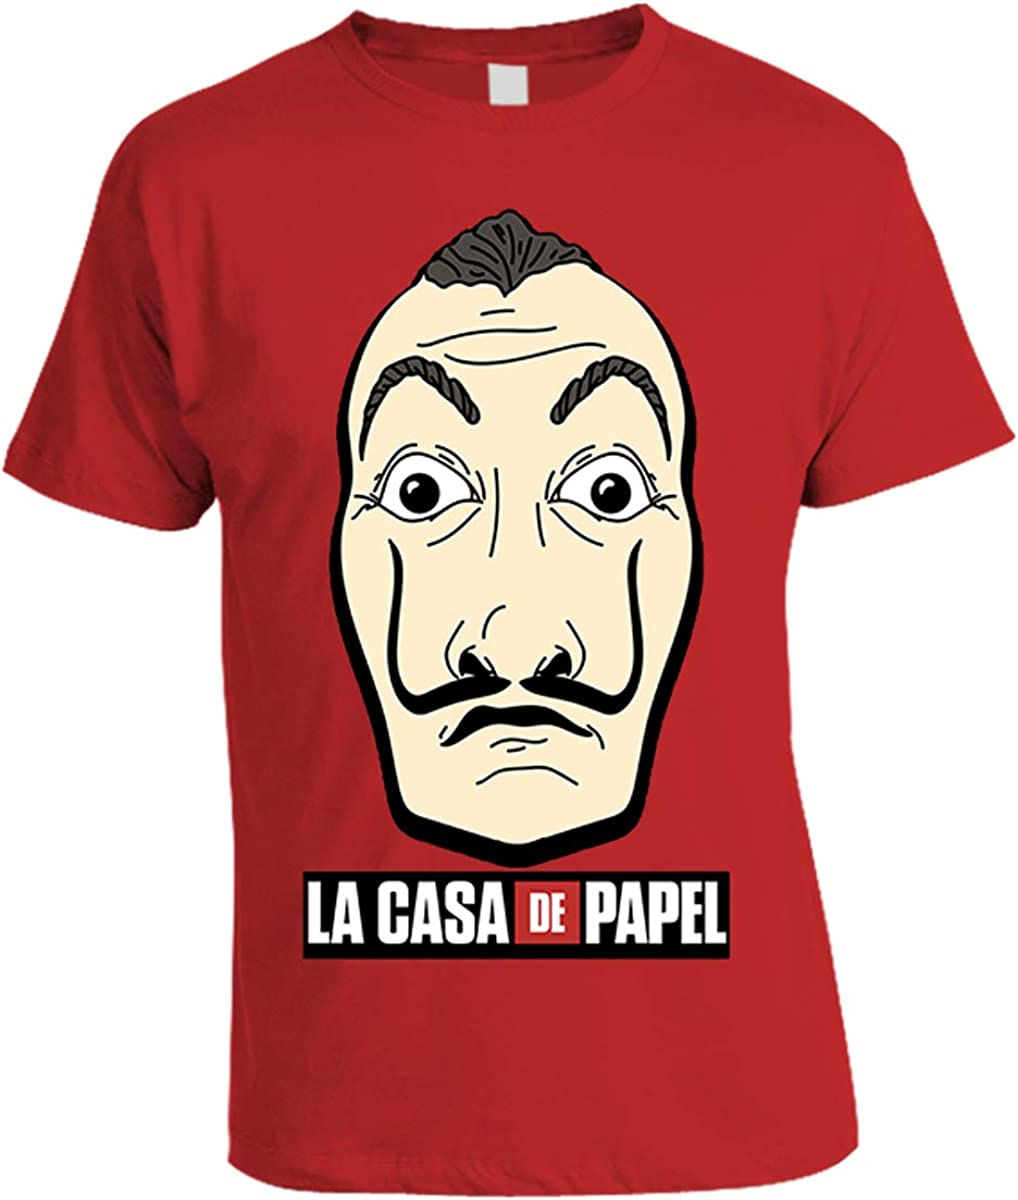 Casa De Papel Money Heist Red Tshirt Front Print Dalì Mask Logo Official Product 100 Original Netflix Tv Series Xxl Amazon Co Uk Clothing